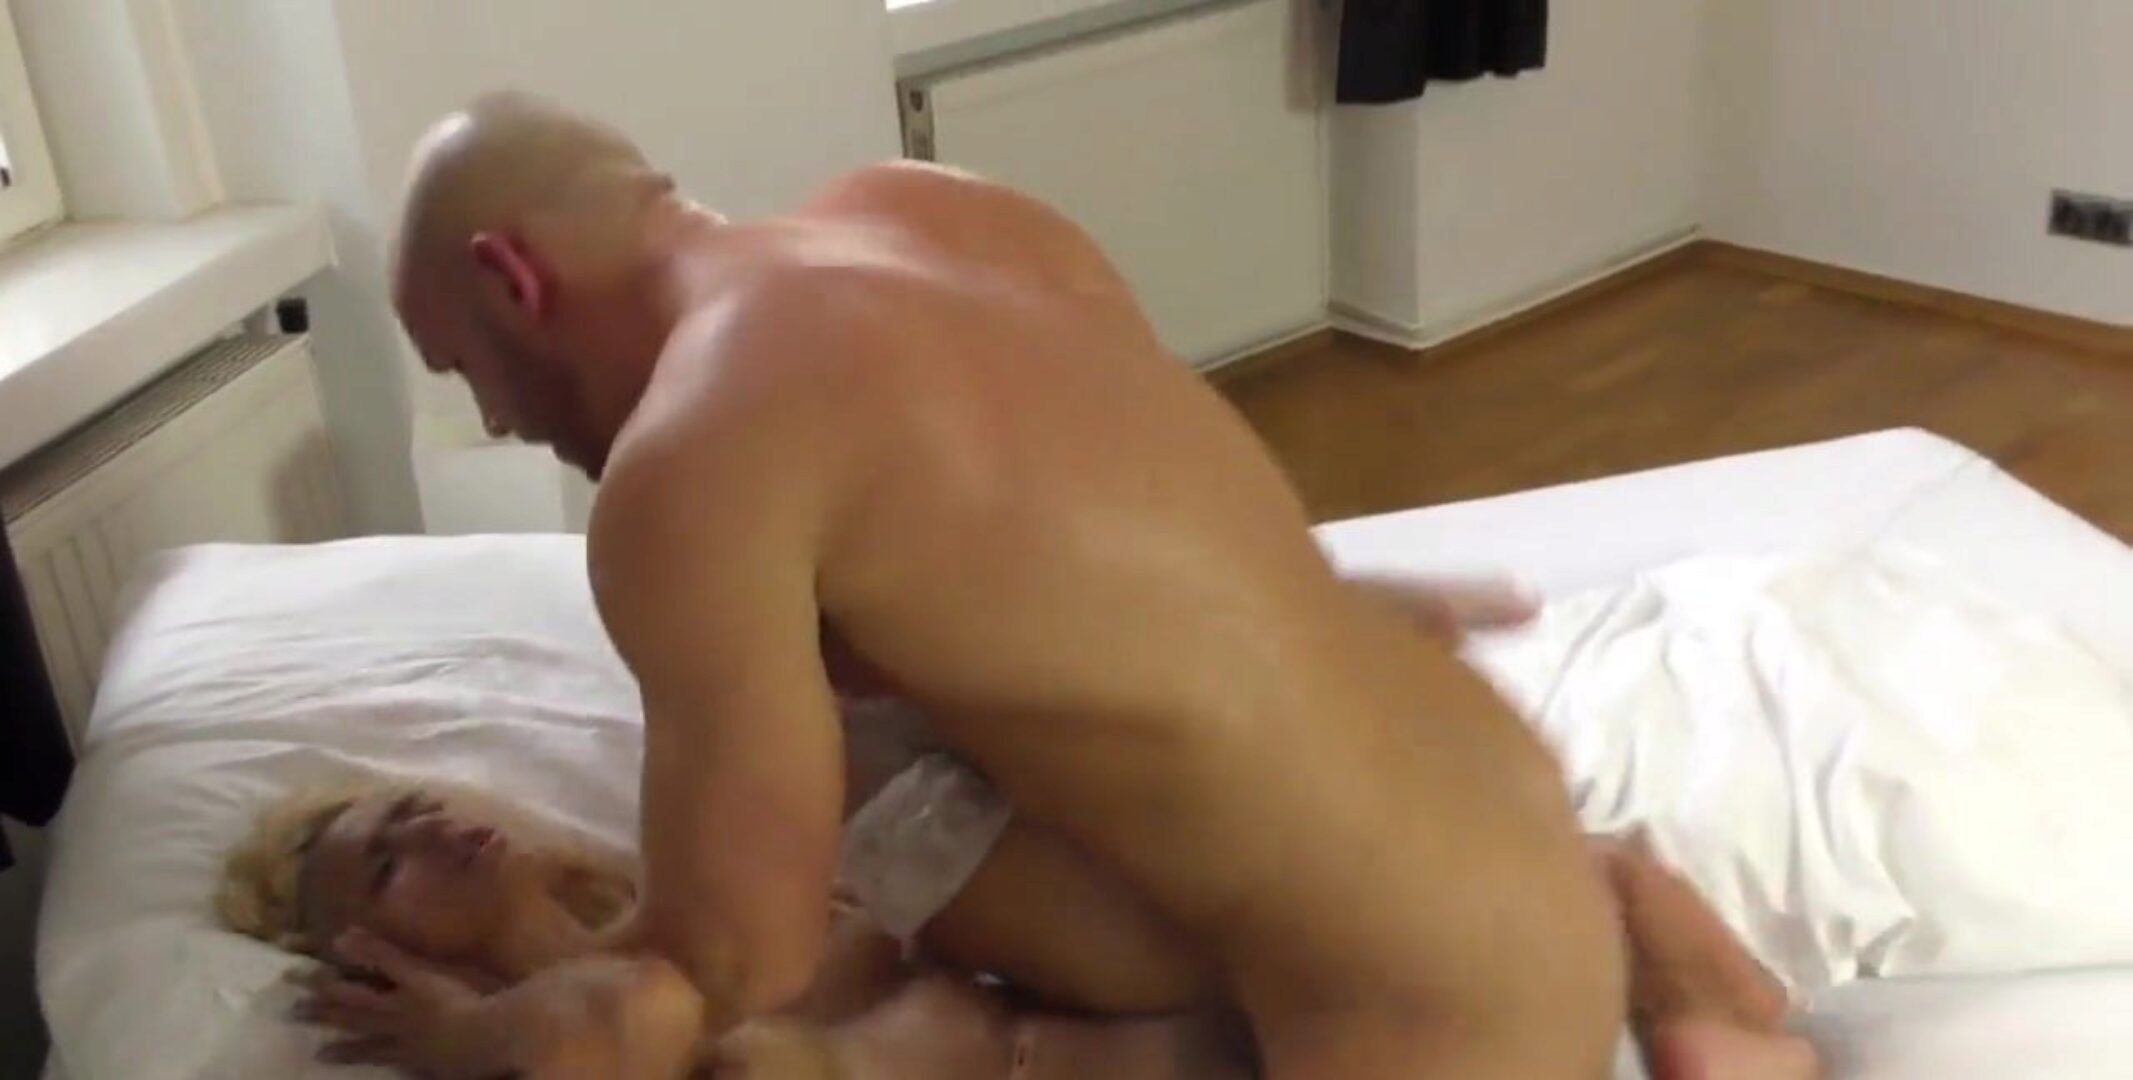 SQUIRT EXPLOSION - she Cums all over him as that guy makes her Cum Multiple Times - MrBigFatDick